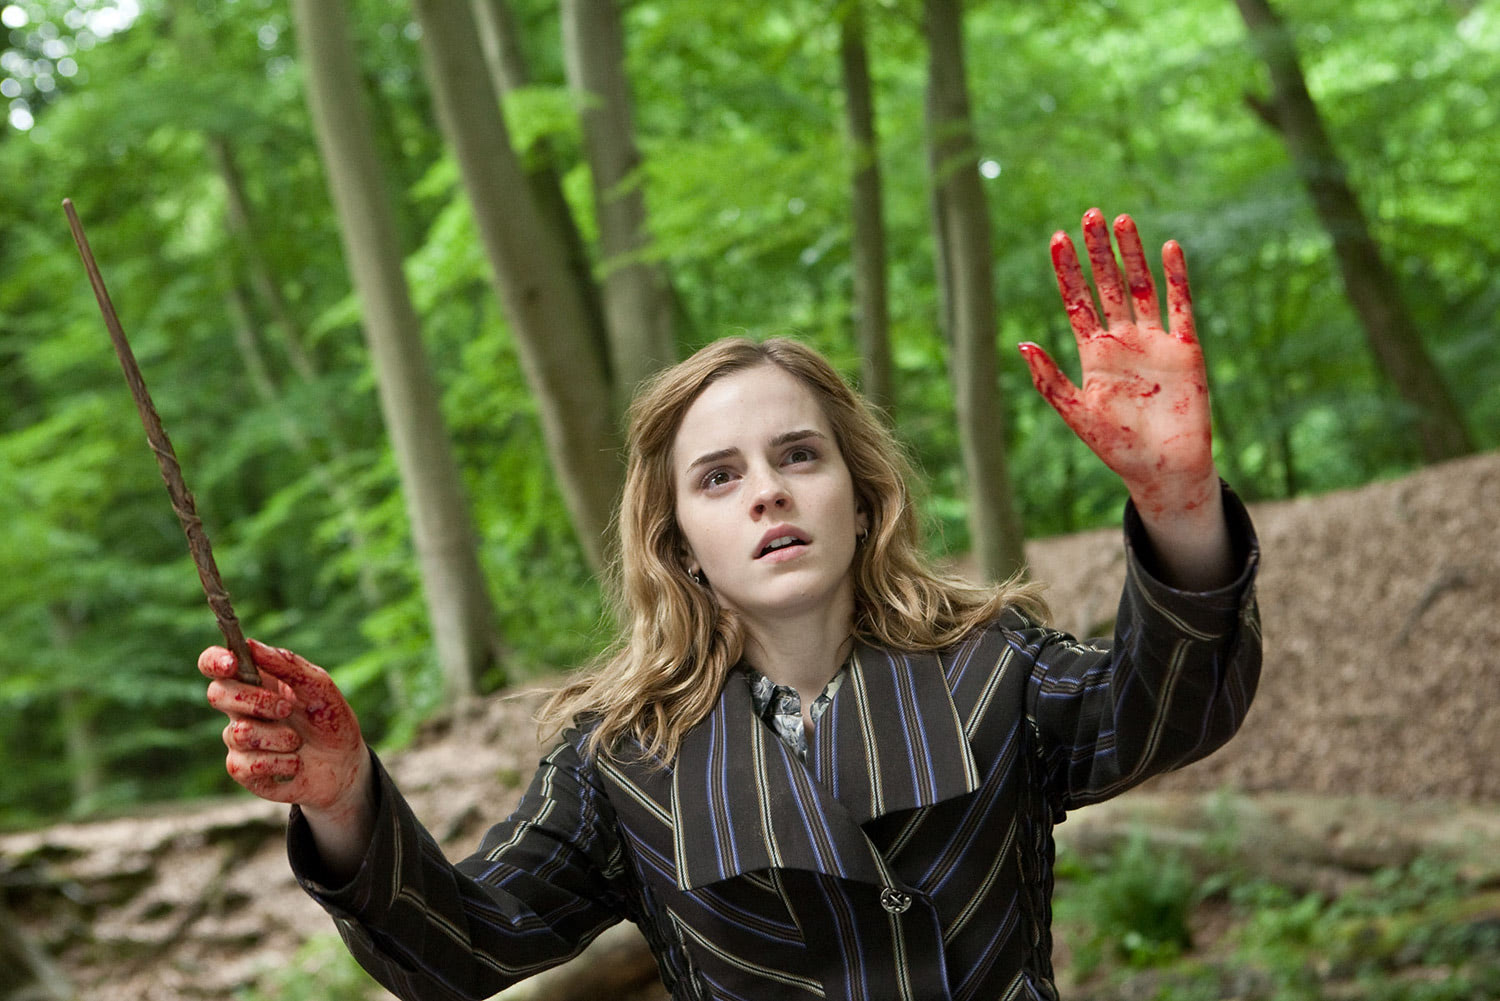 Hermione with bloodied hands